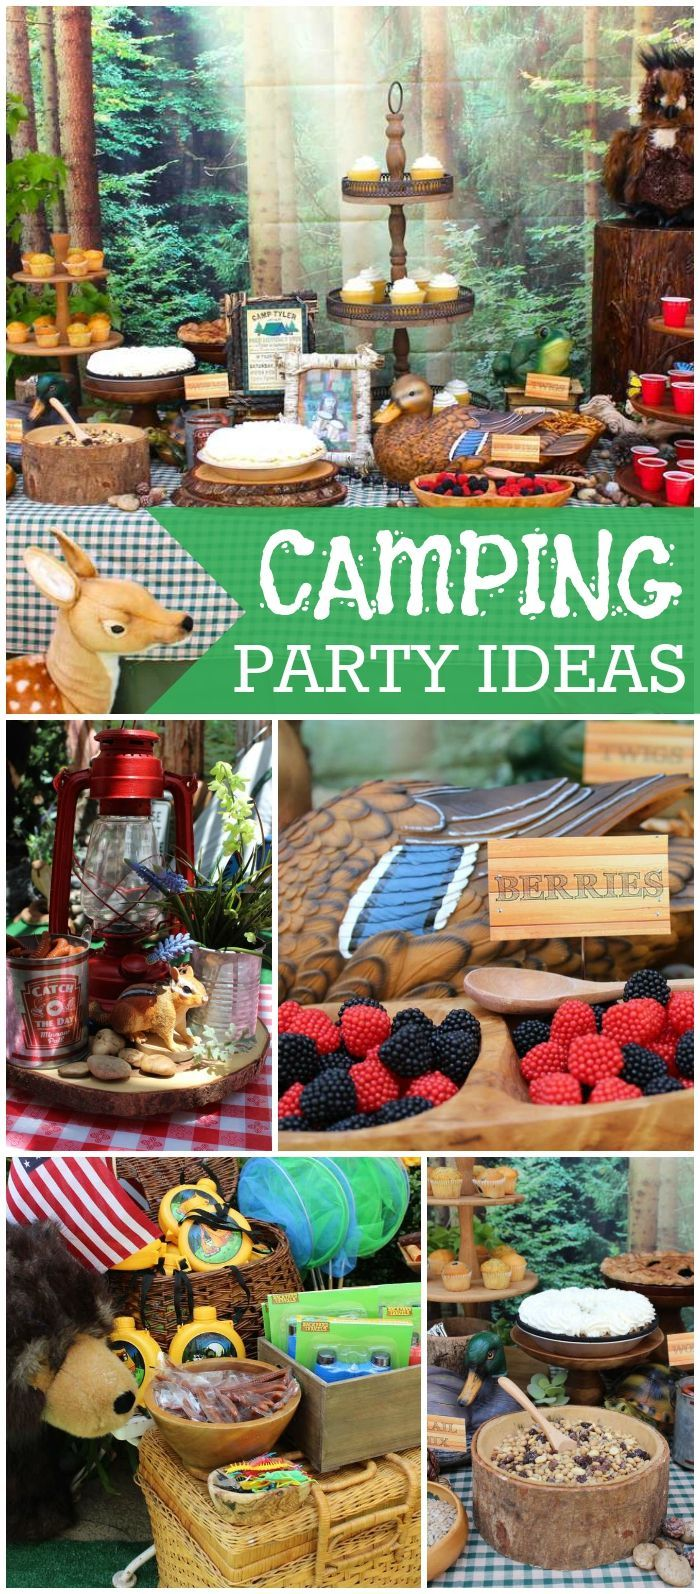 Check out this camping party with s'mores and a nature scavenger hunt! See more party ideas at http://CatchMyParty.com!